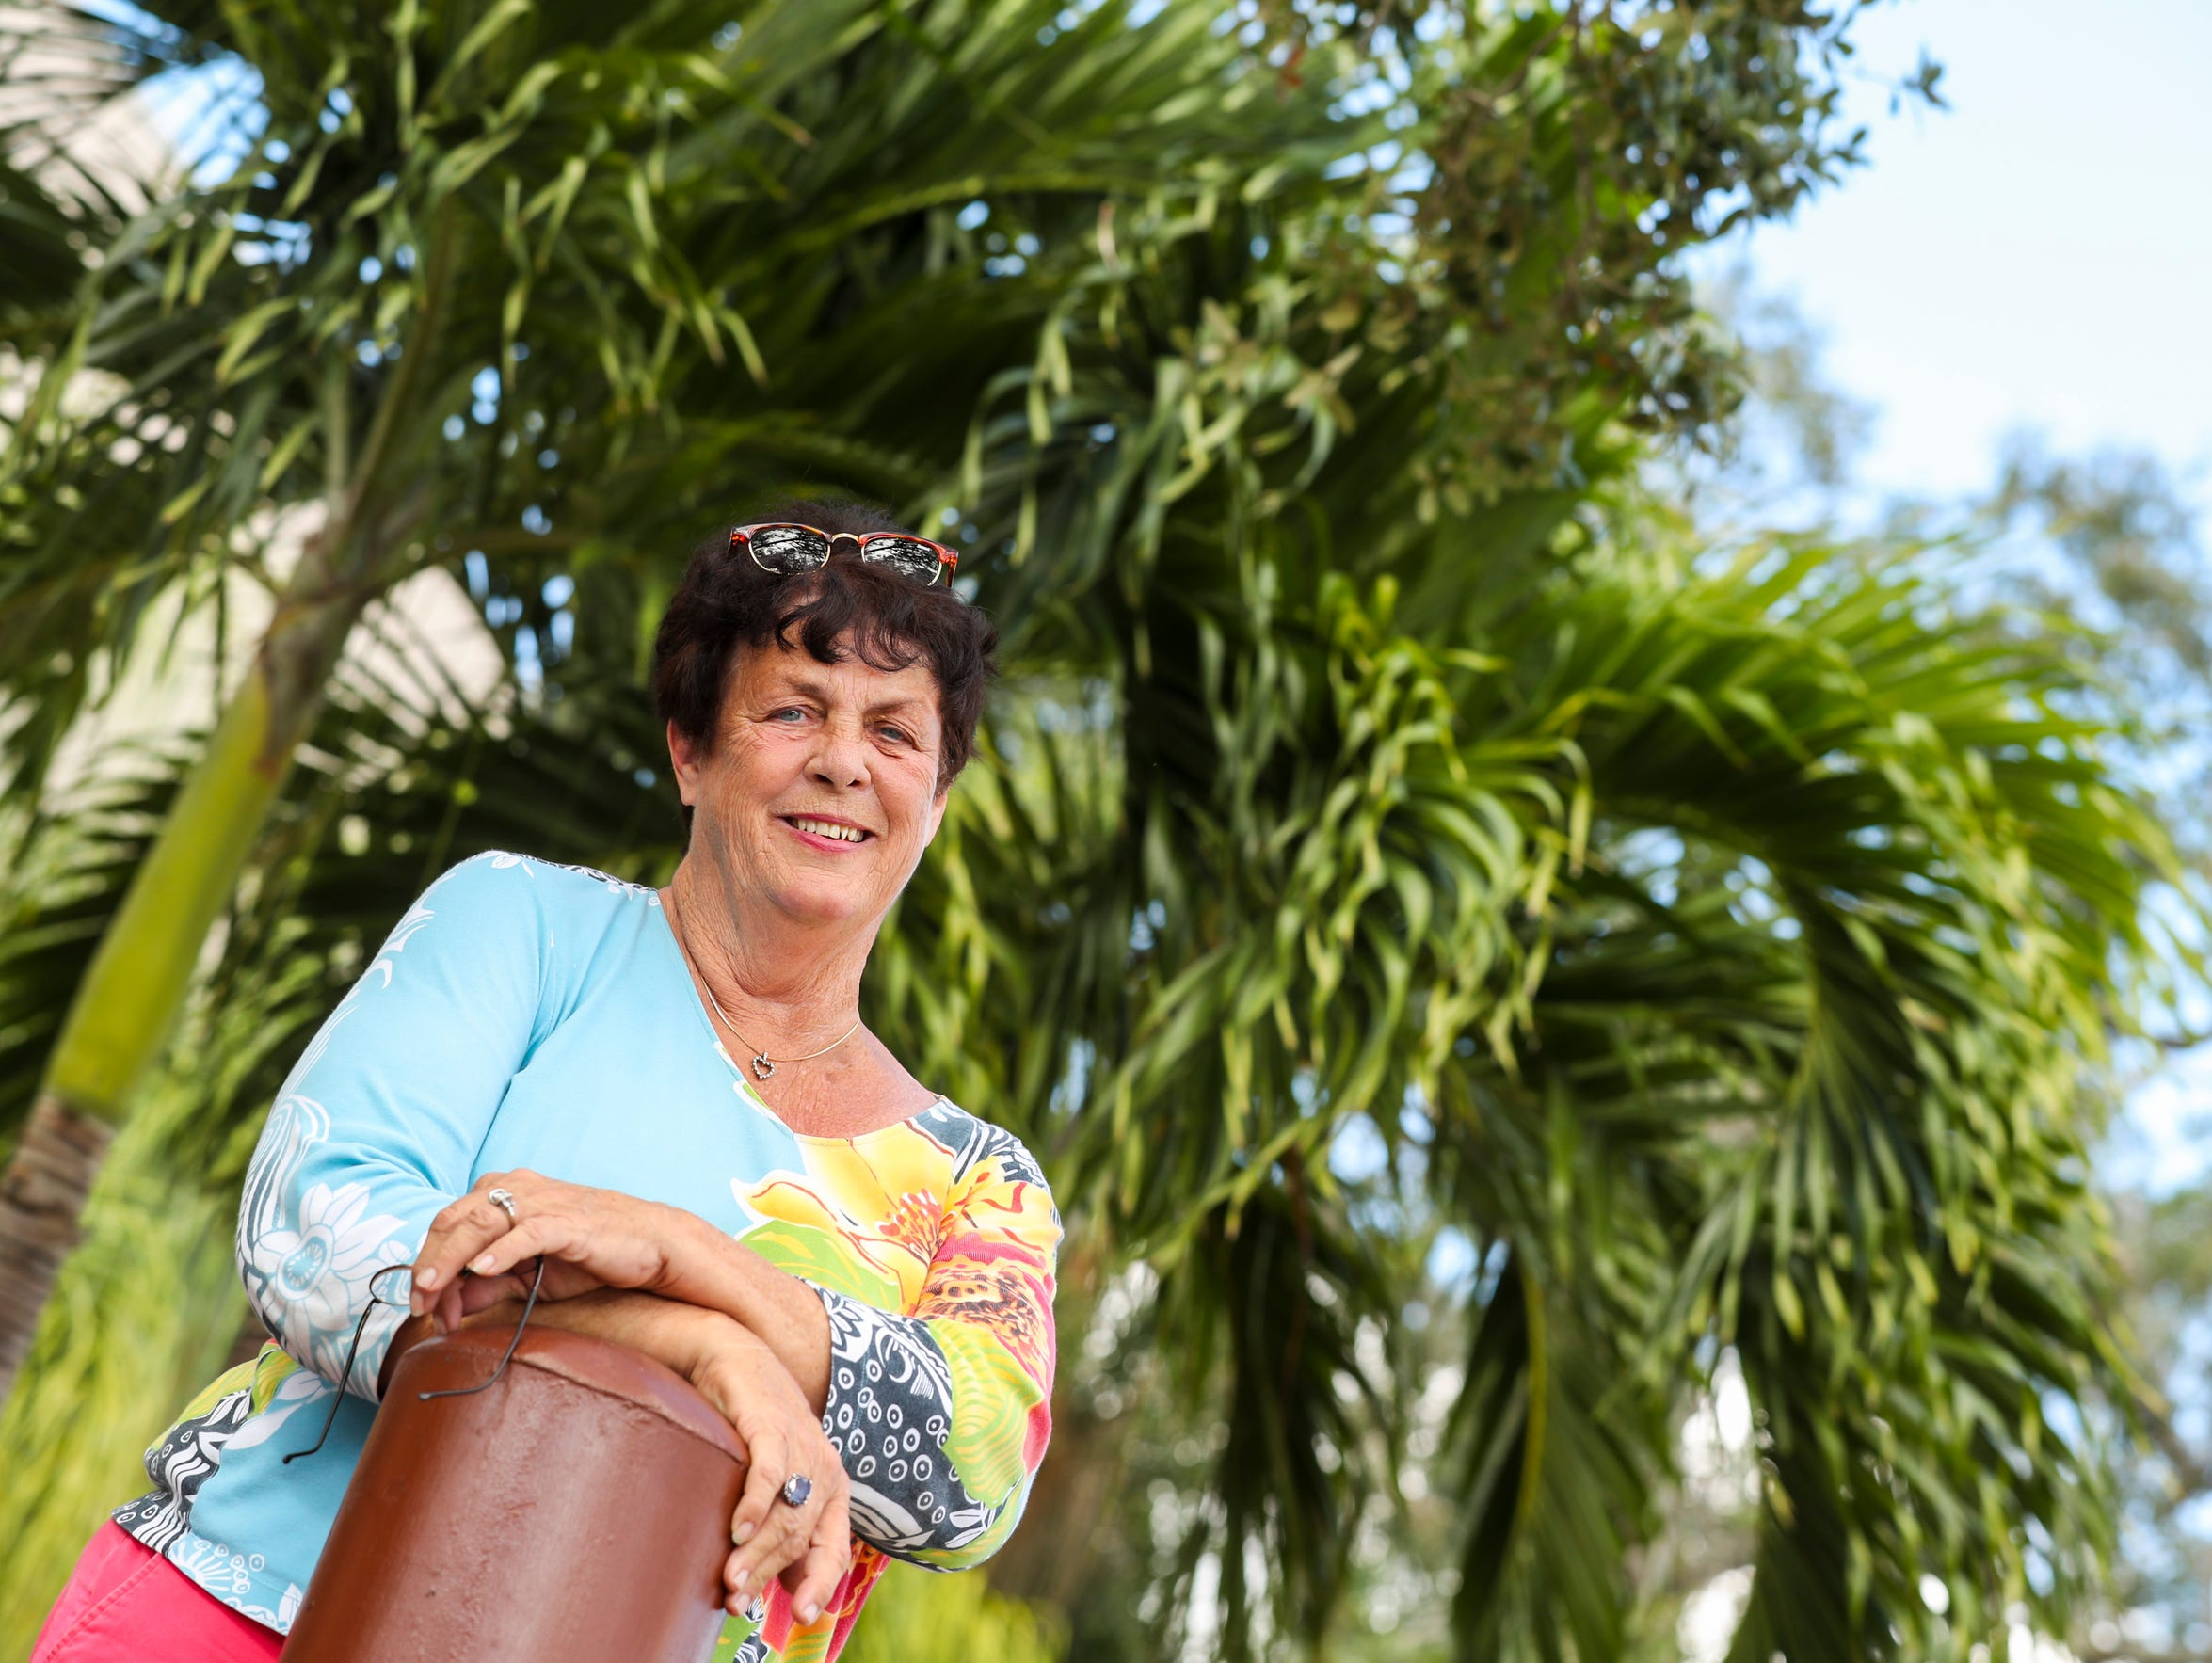 Karyn Tighe of Cape Coral has had a challenging time